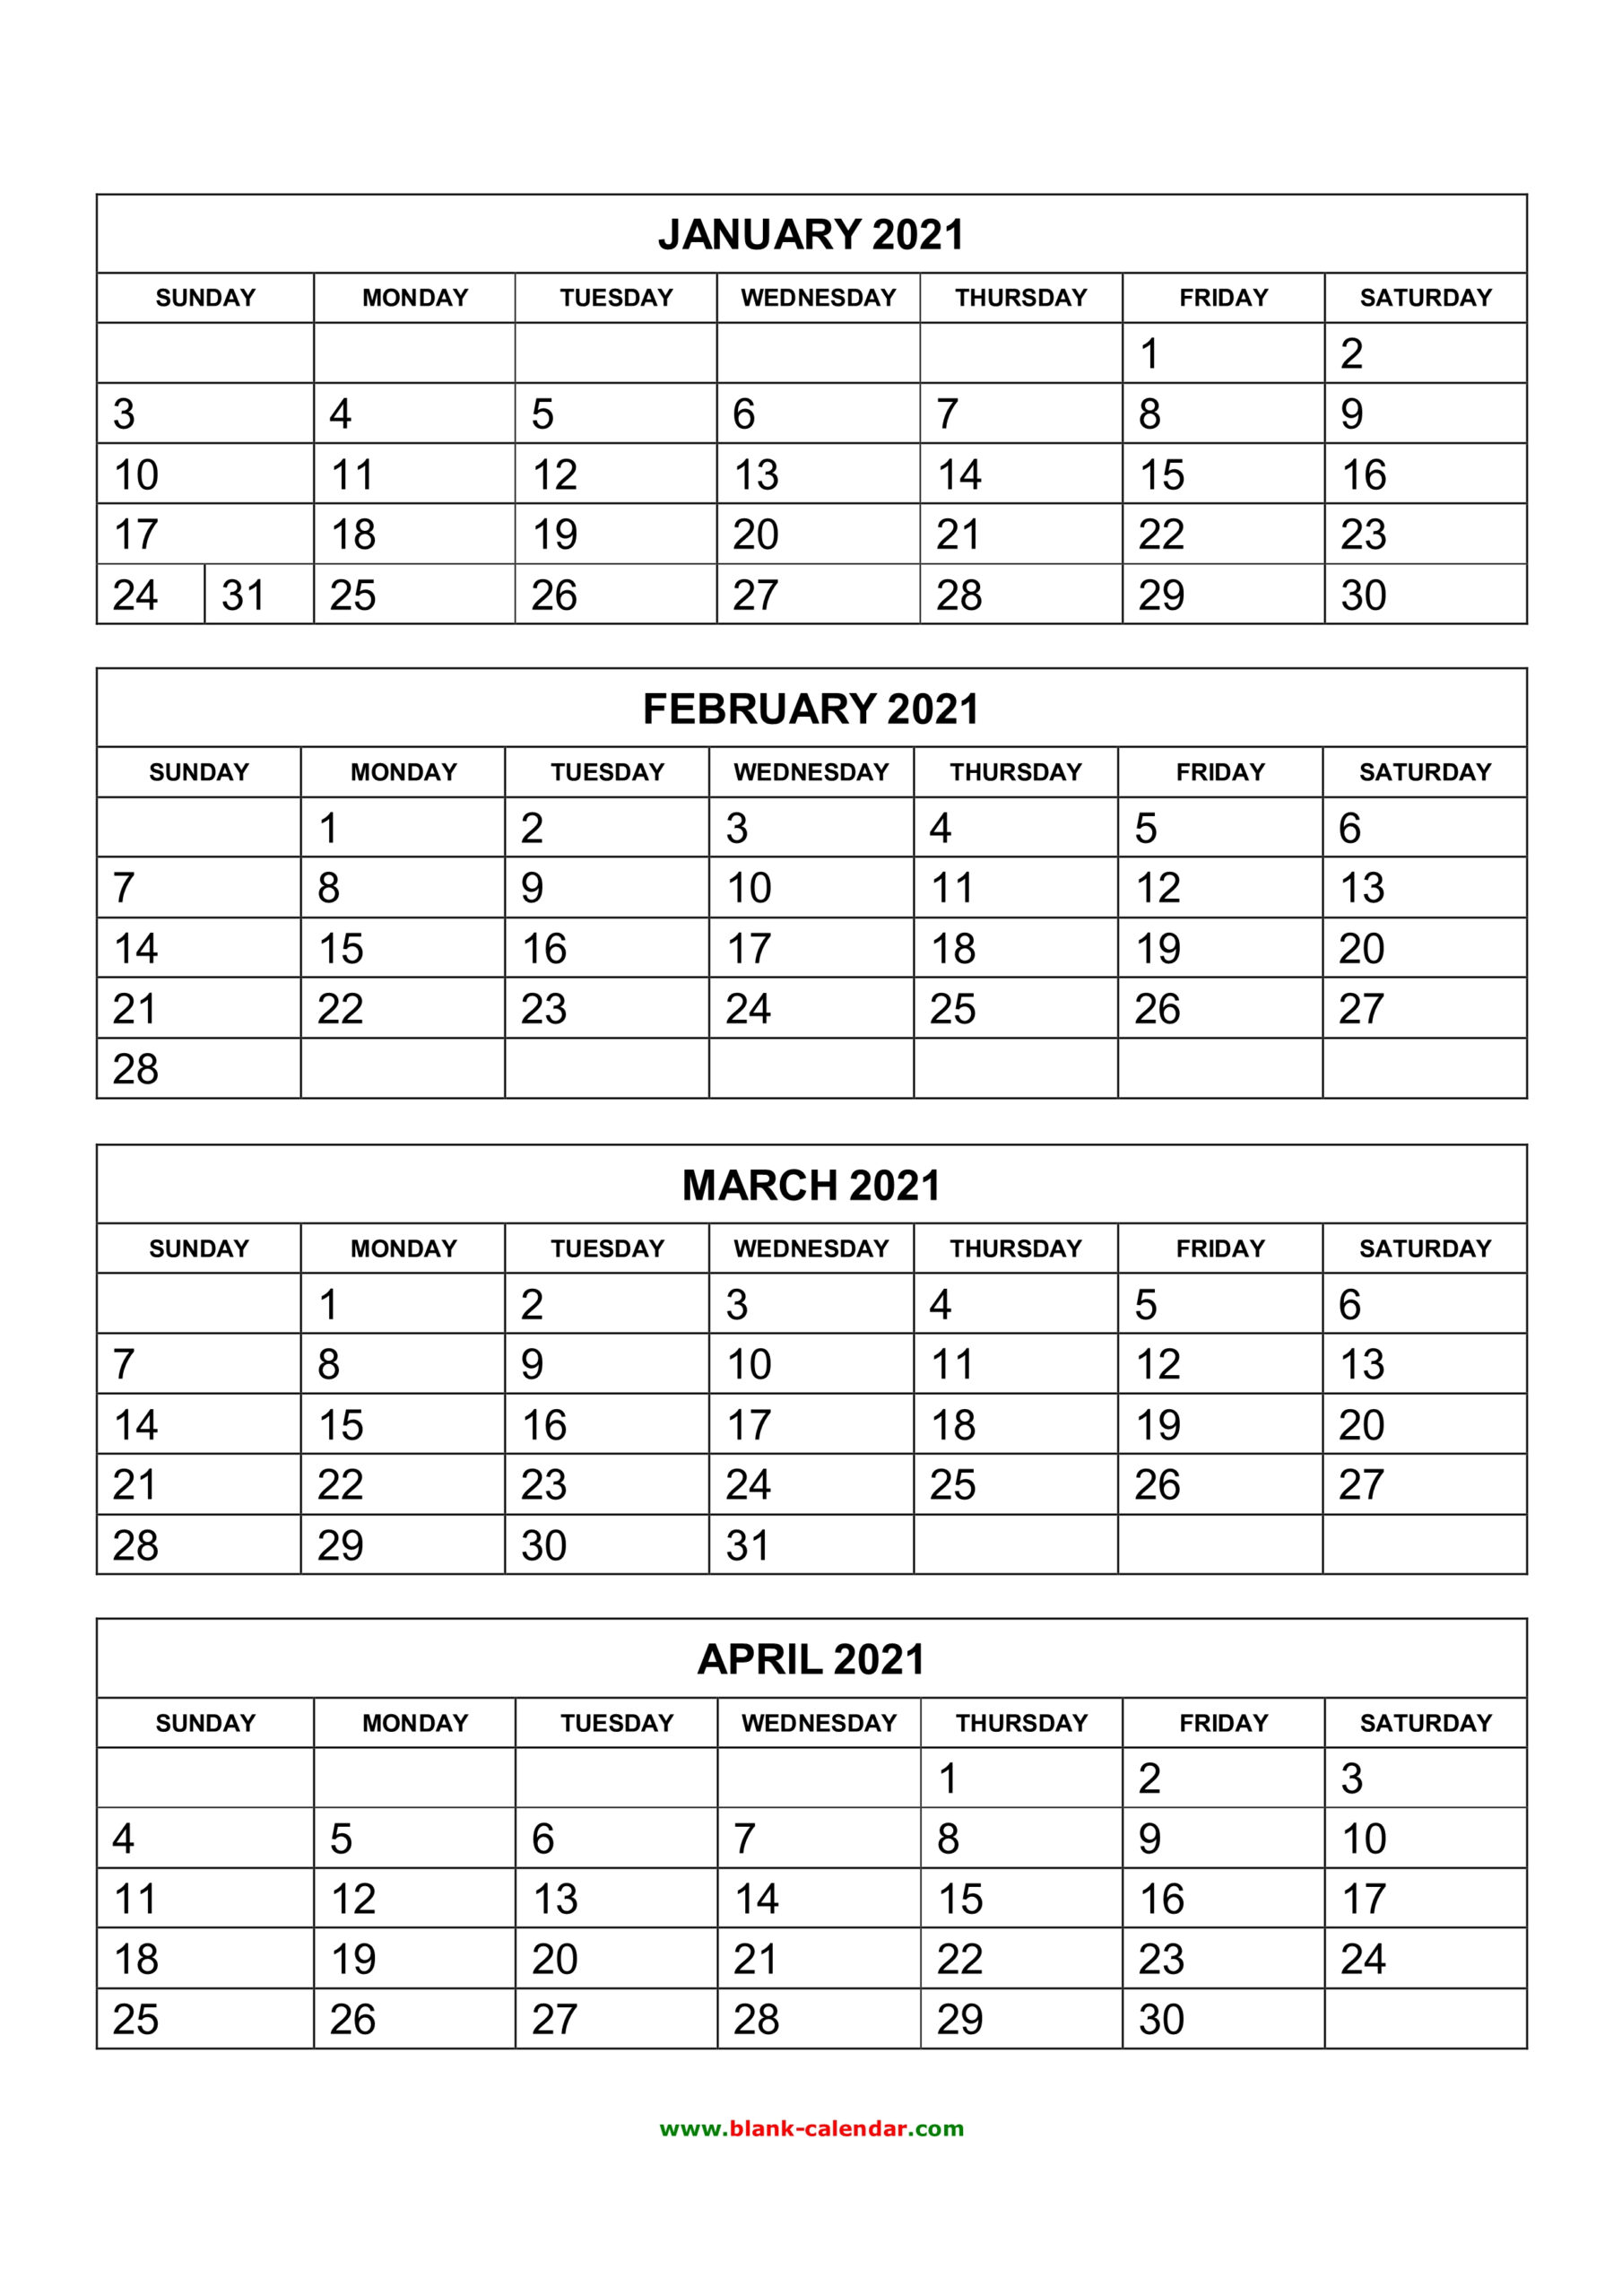 Free Download Printable Calendar 2021, 4 Months Per Page, 3 intended for Free Printable Calendar 4 Months Per Page